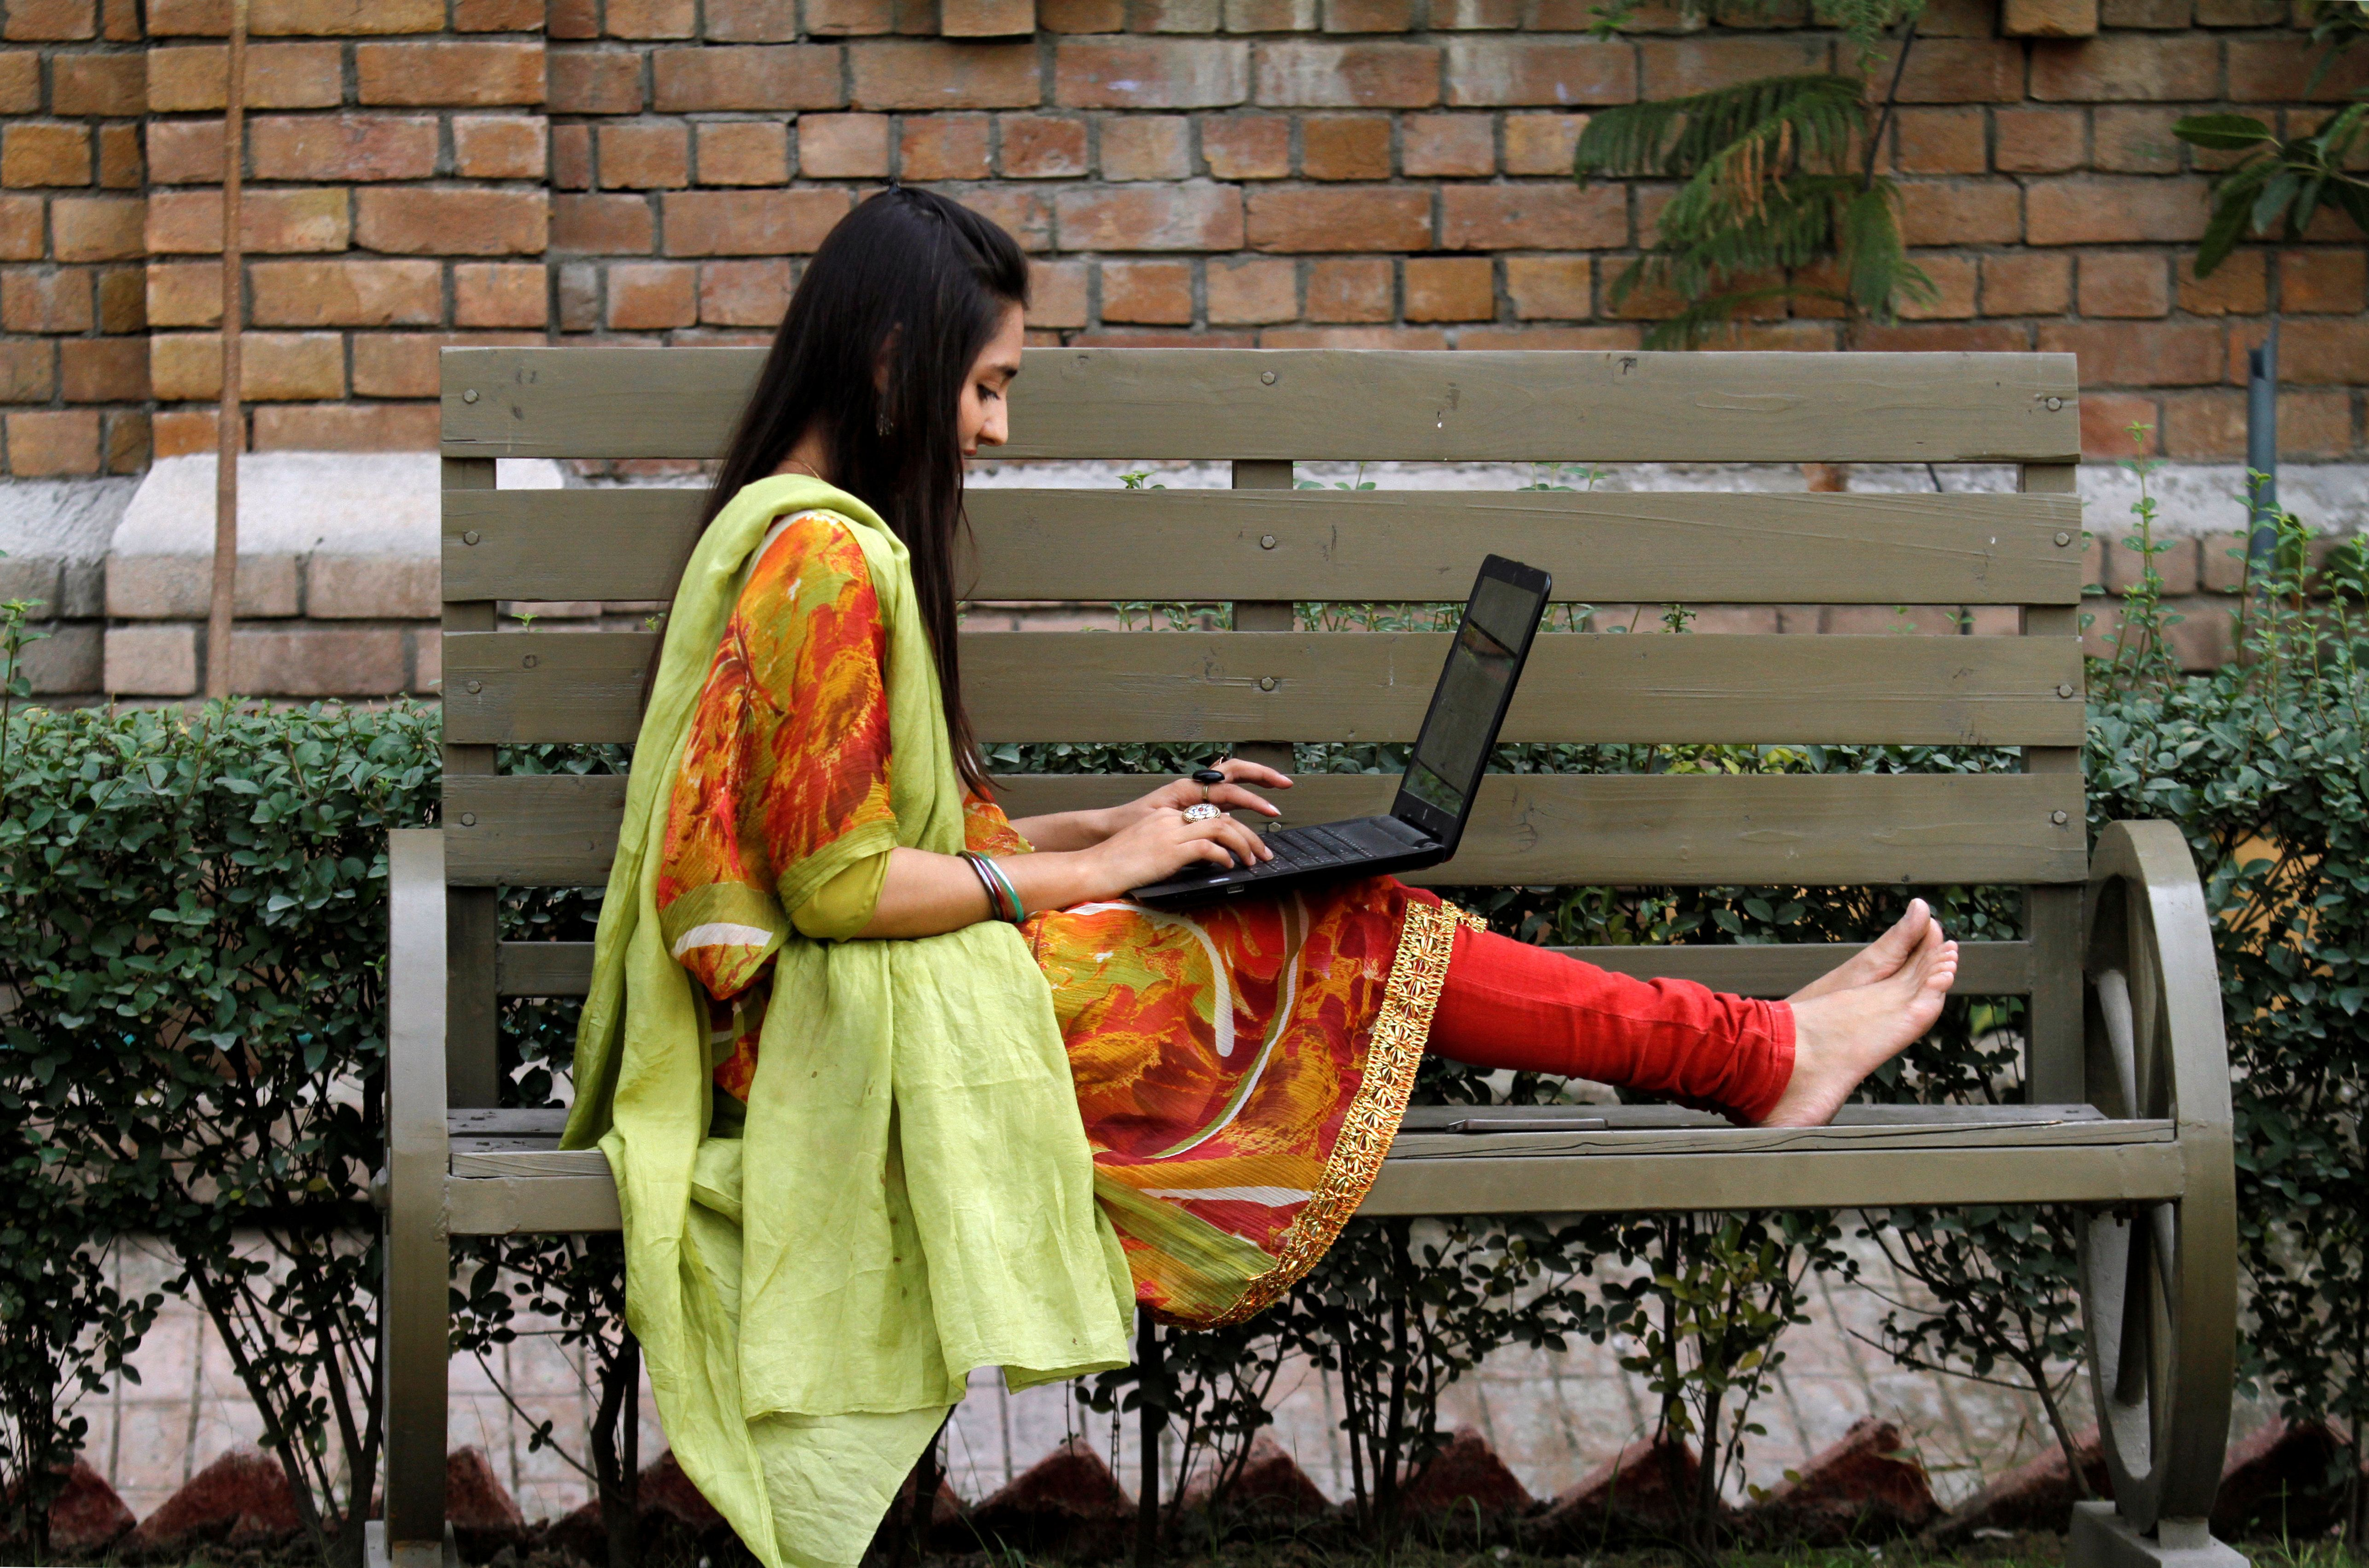 A student works on her computer sitting on a bench at Shaheed Benazir Bhutto Women's University in Peshawar, Pakistan October 19, 2017  REUTERS/ Fayaz  Aziz